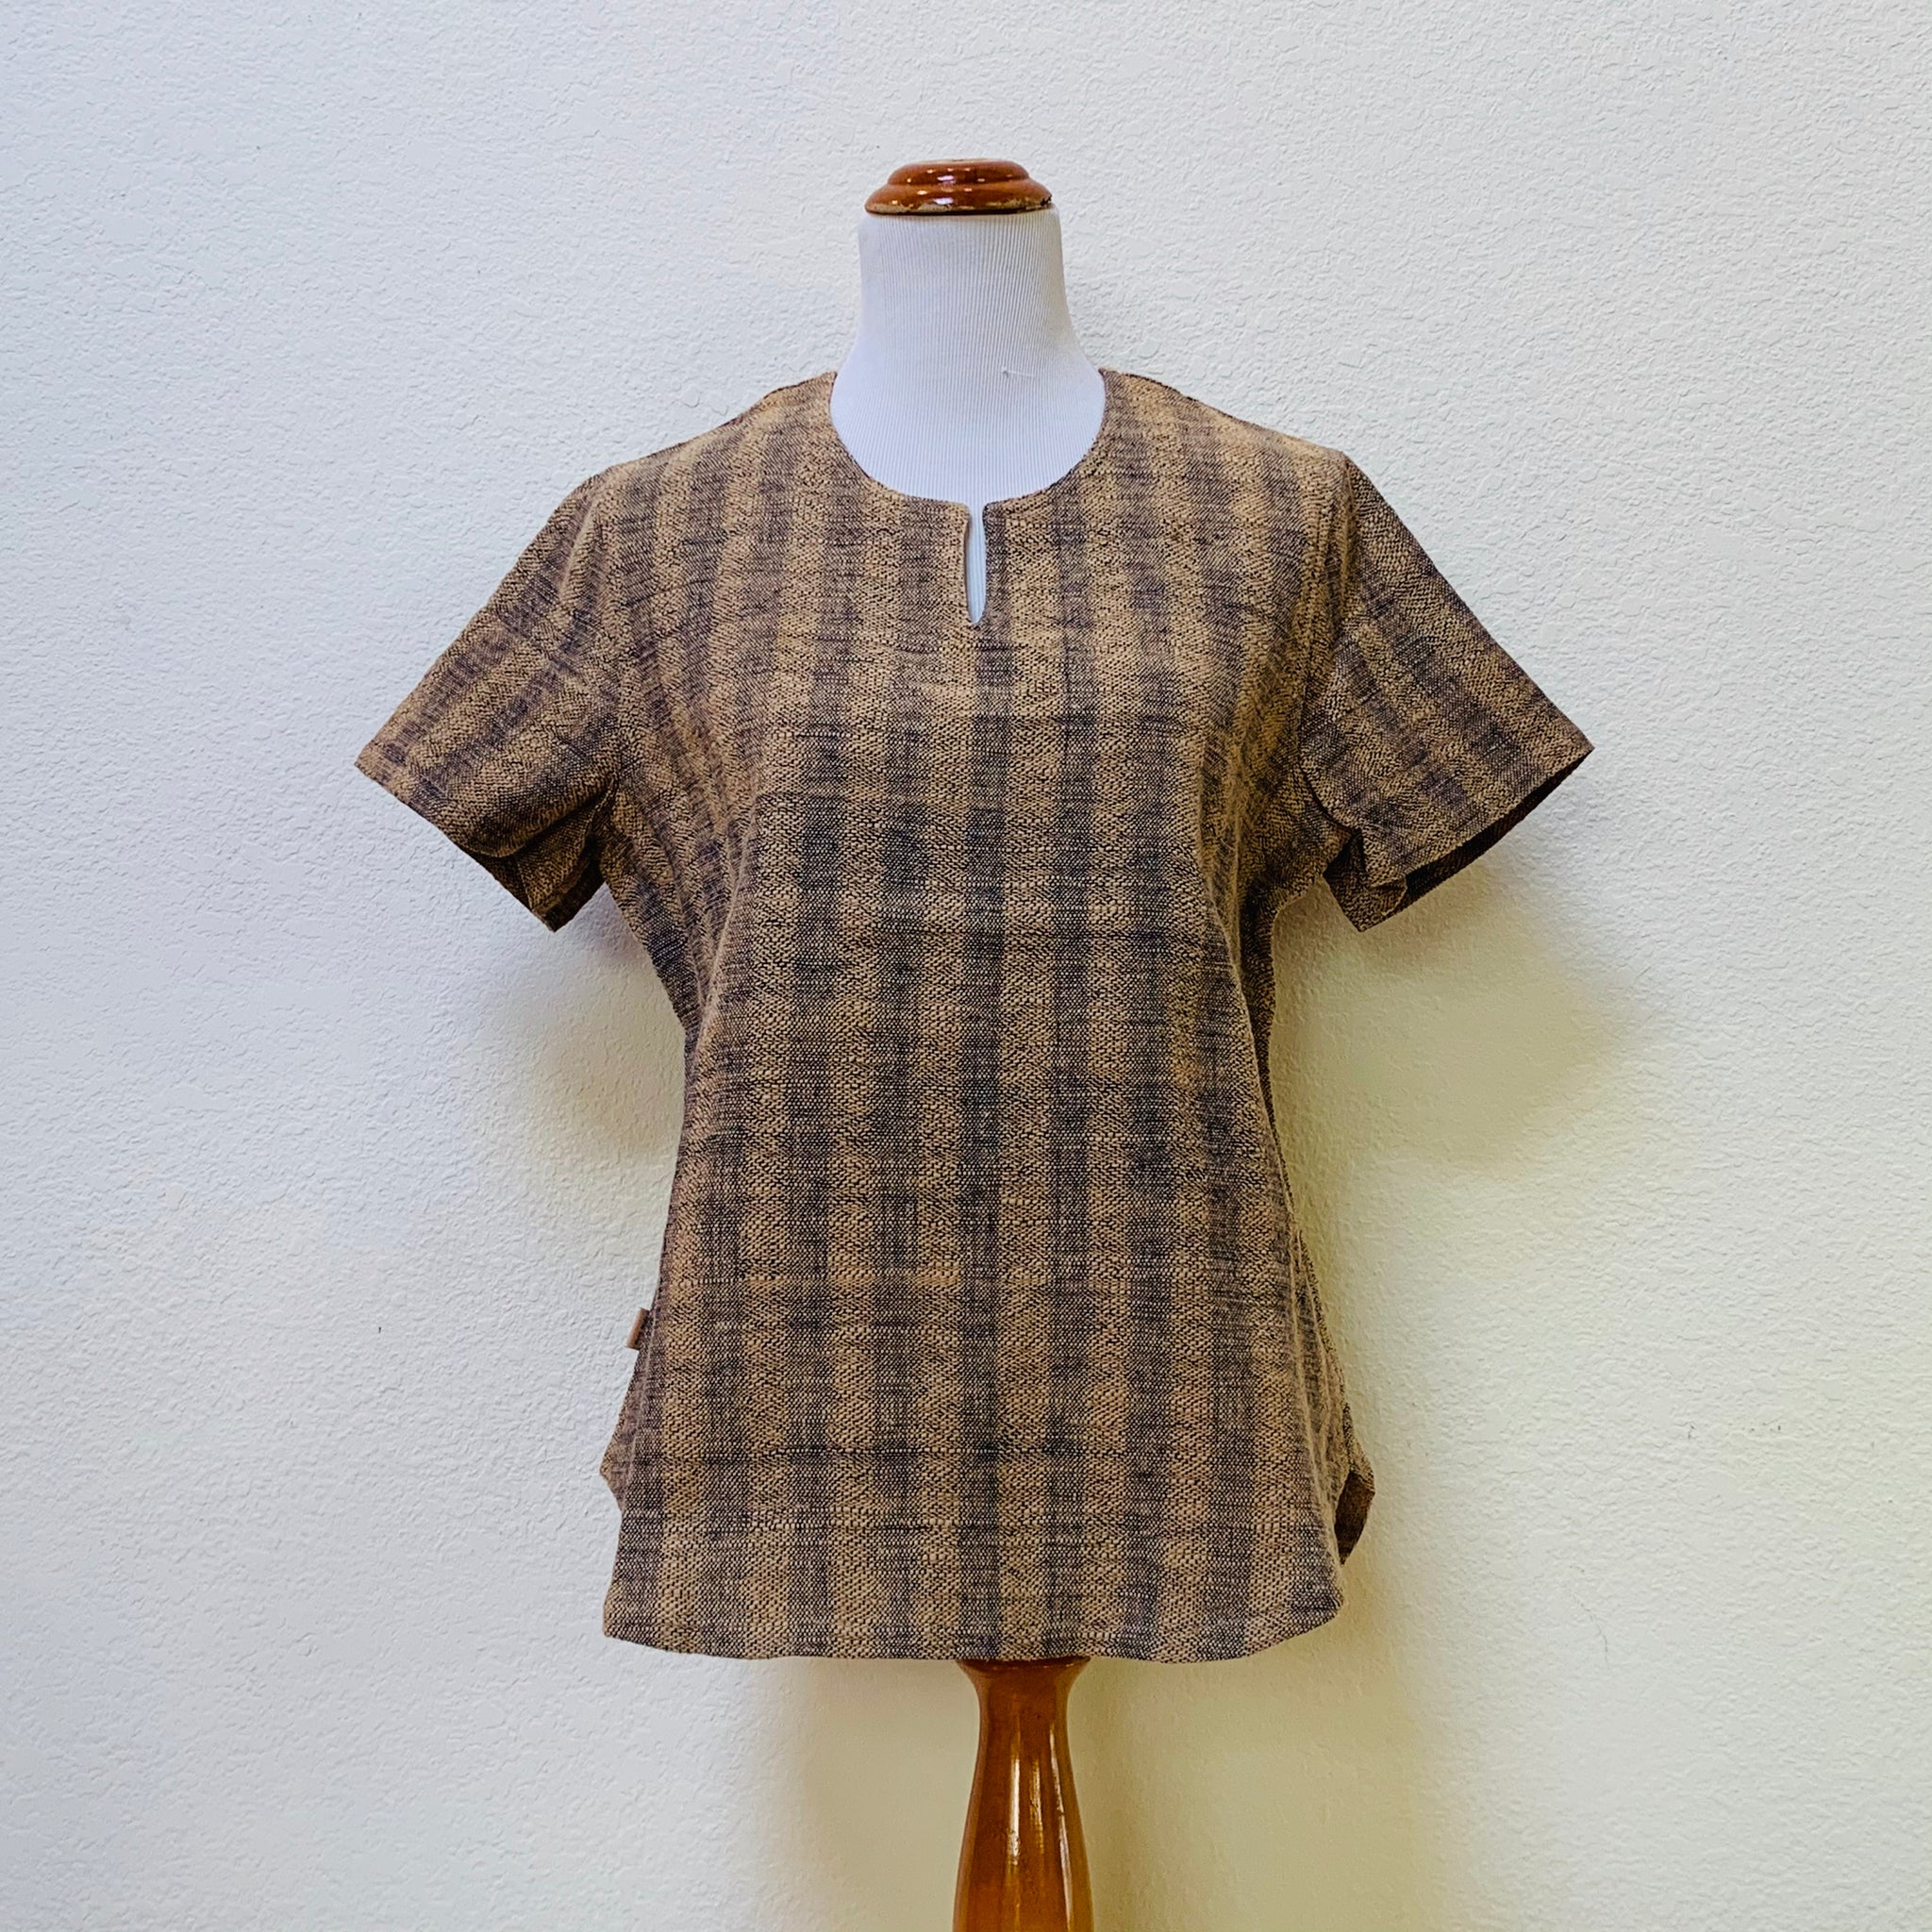 Key-Neck Short Sleeve Hemp Shirt Unisex 1188K 6B - Size 6 - Brown / Indigo Stripes